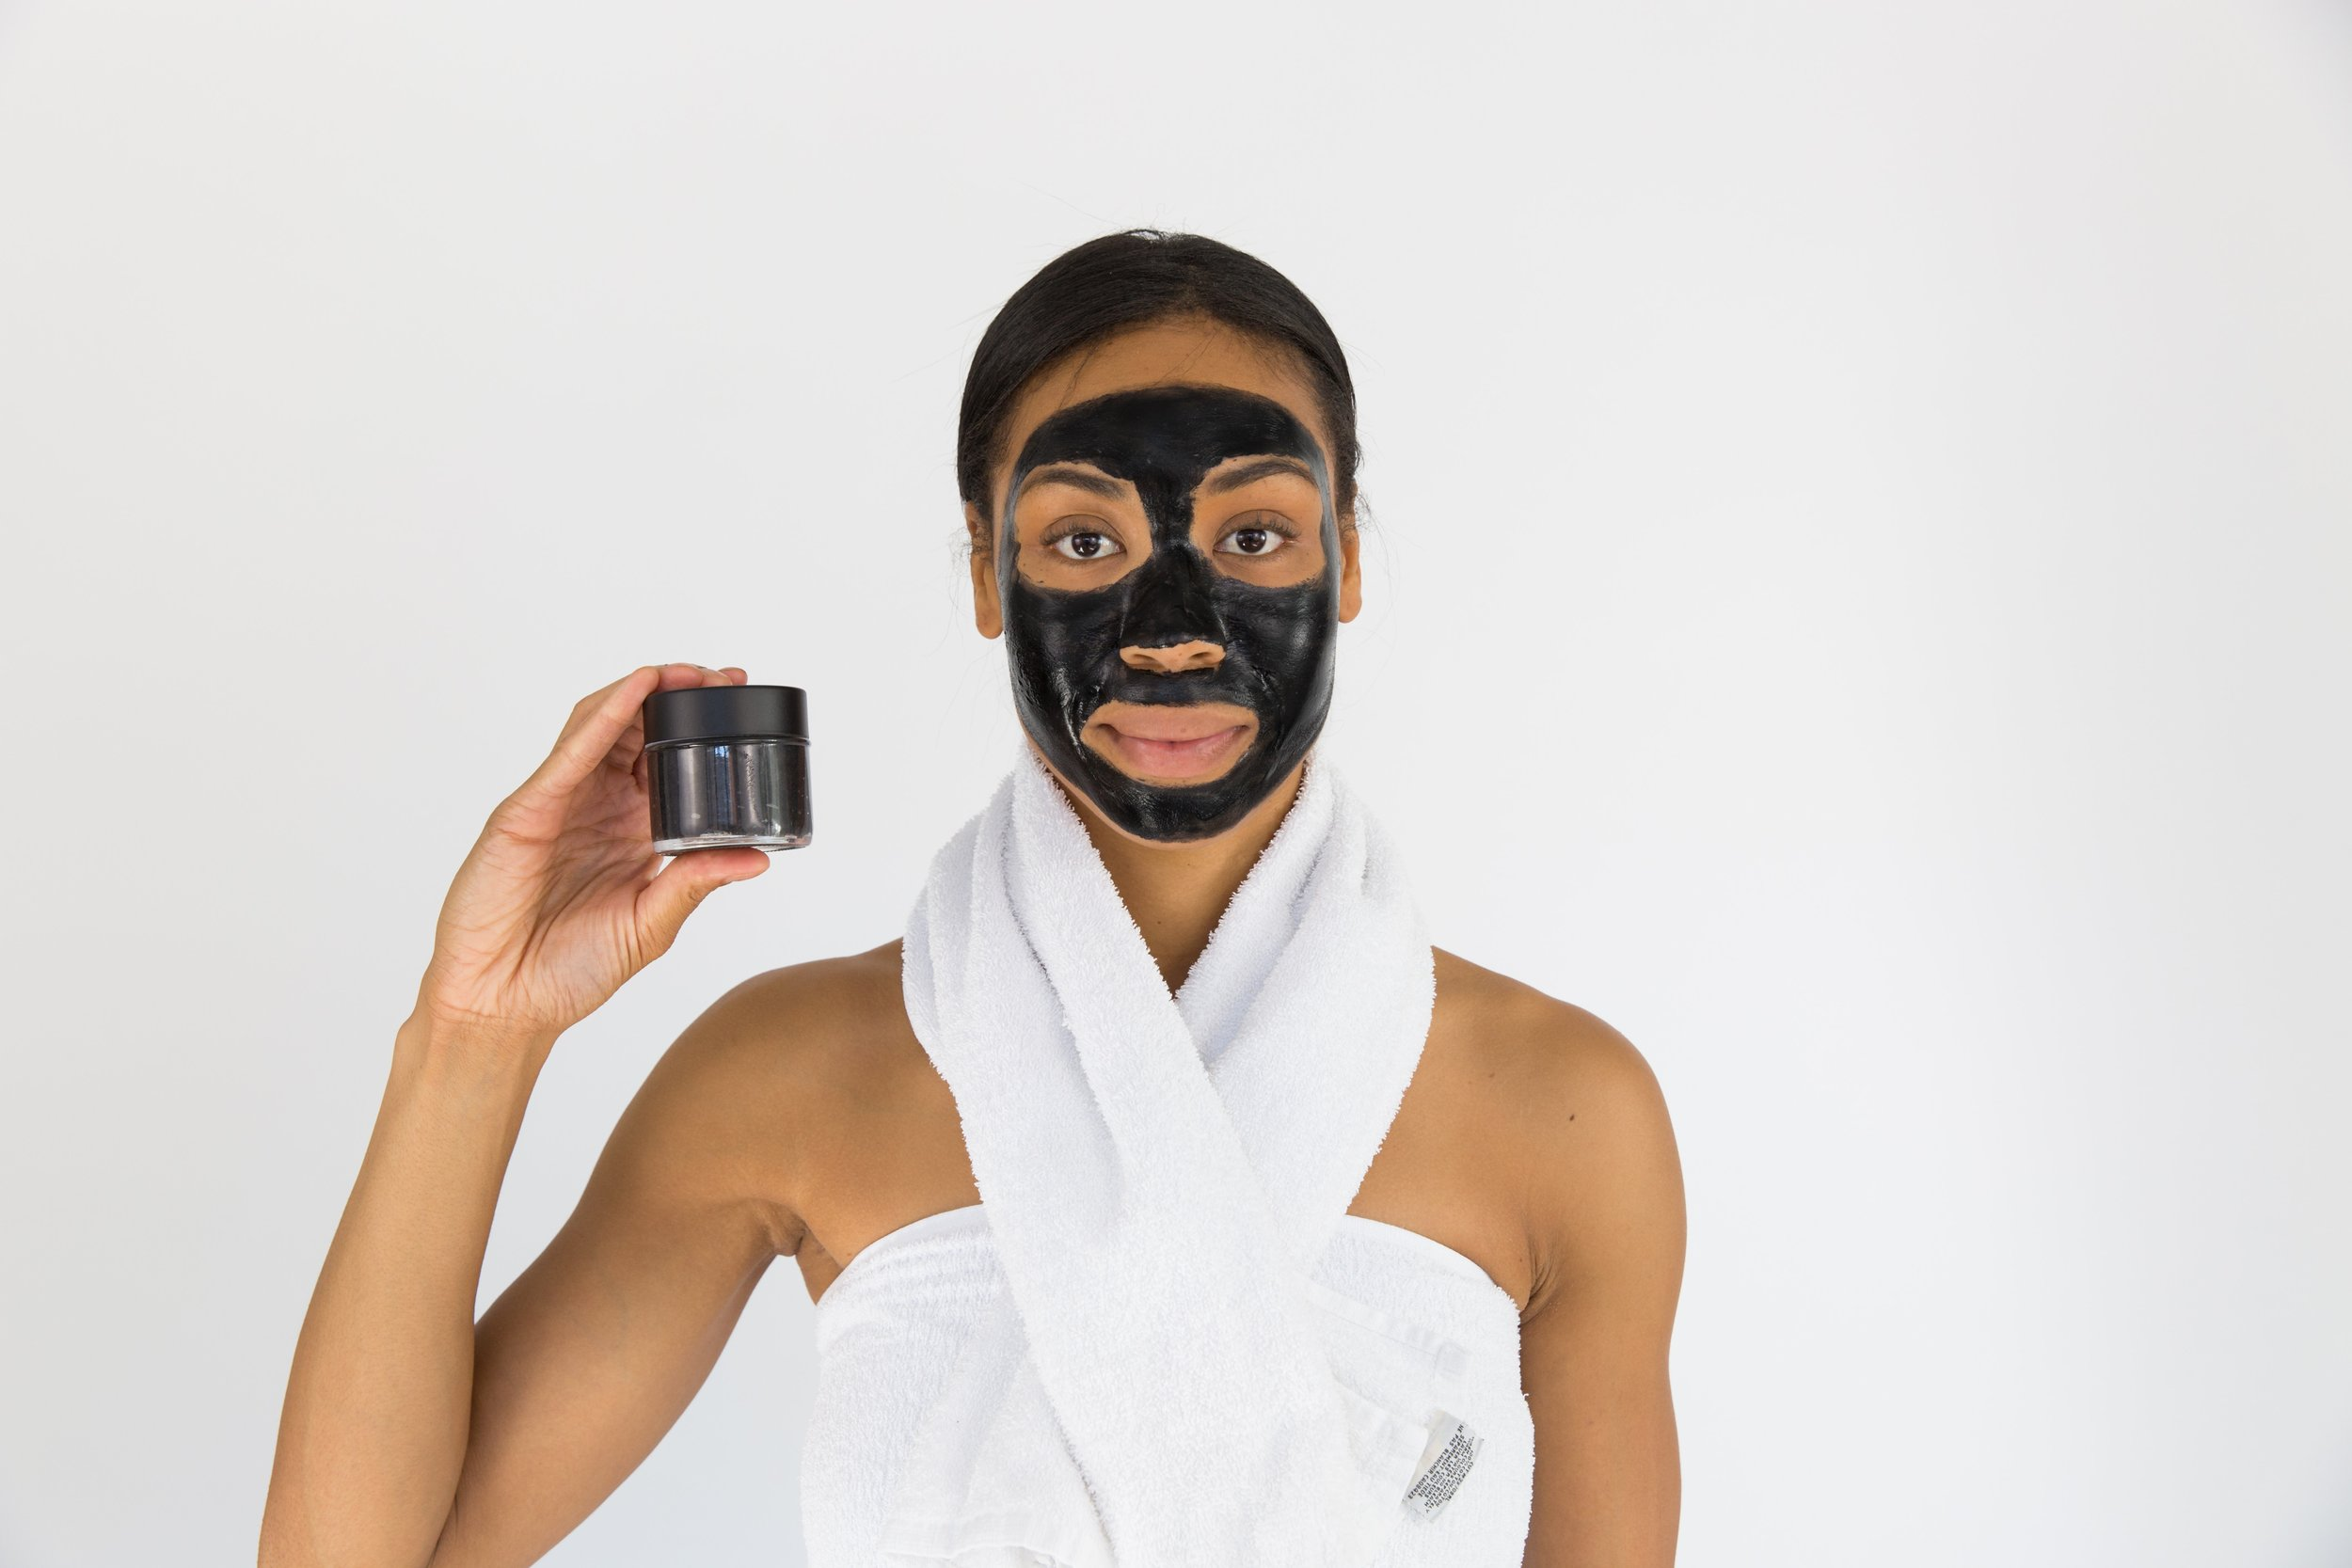 A woman with a facial mask on